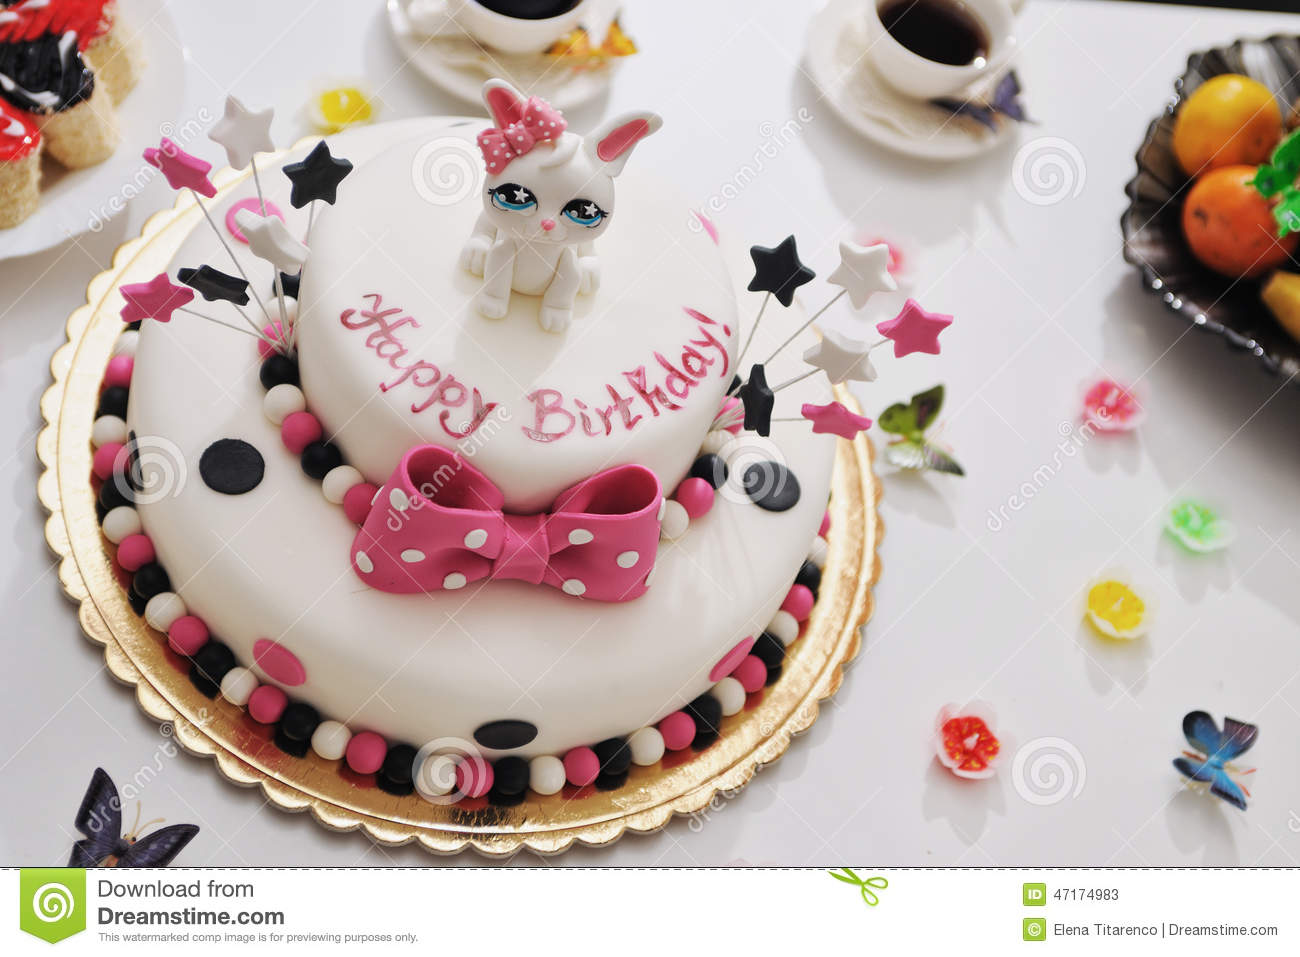 Happy Birthday Cake Stock Photo - Image: 47174983